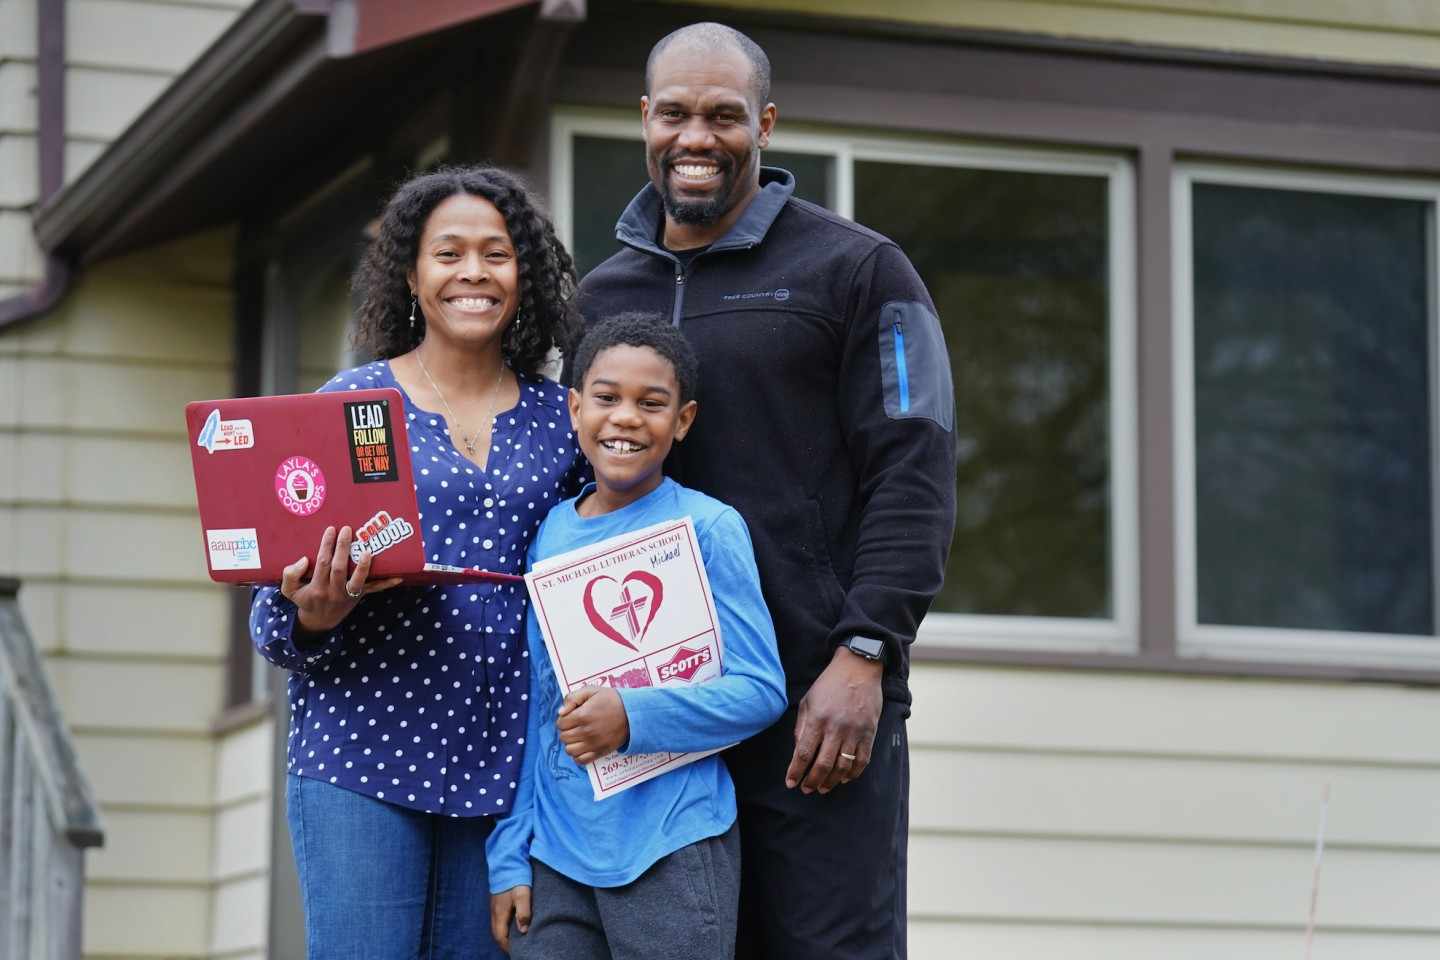 Western Michigan University professor Dr. Luchara Wallace with husband Greg and son Michael.